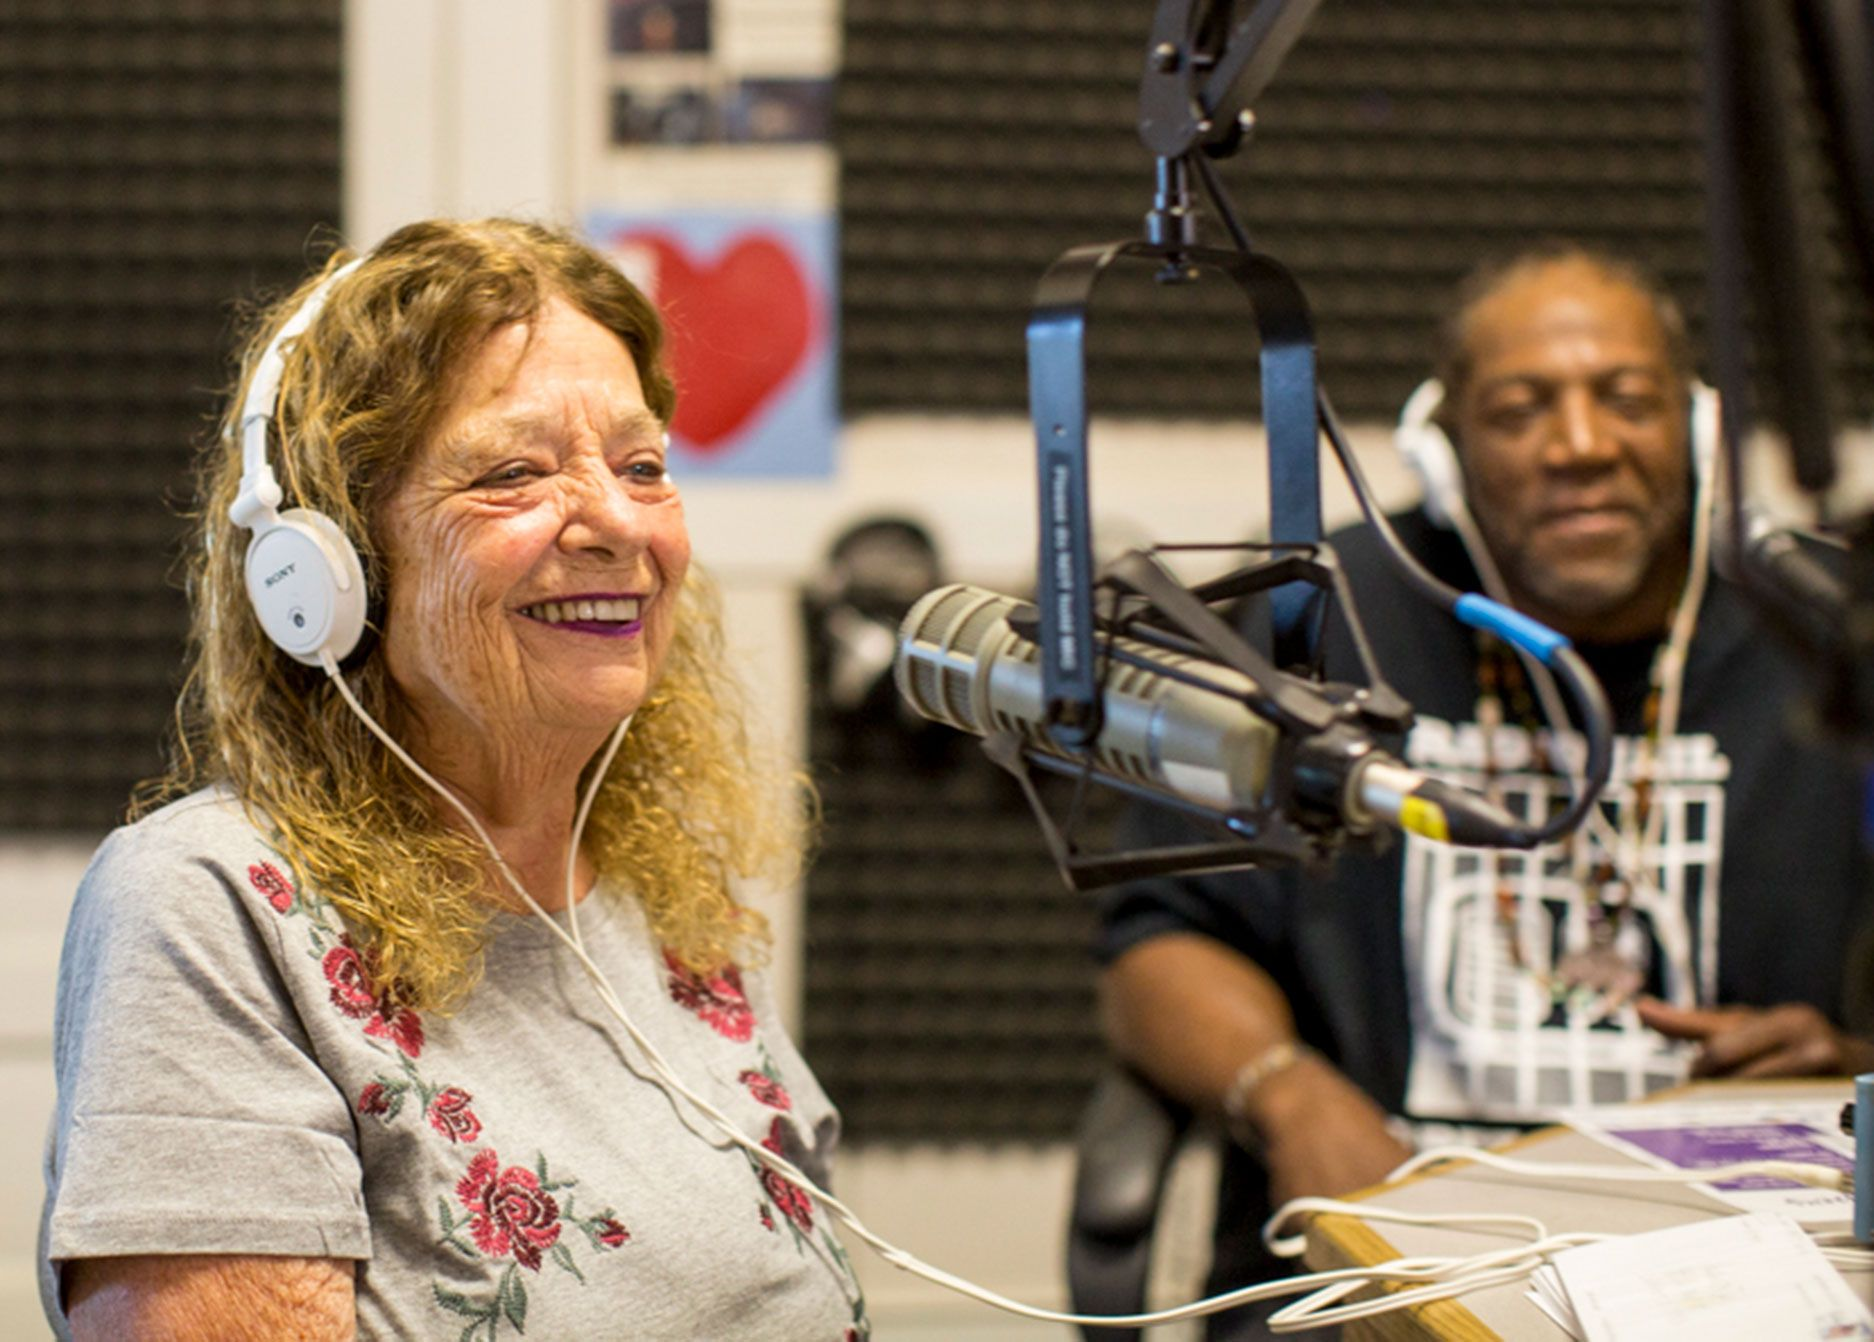 """Radio Jail"" host host Eugenie Steinman on the air with Randall Cole."